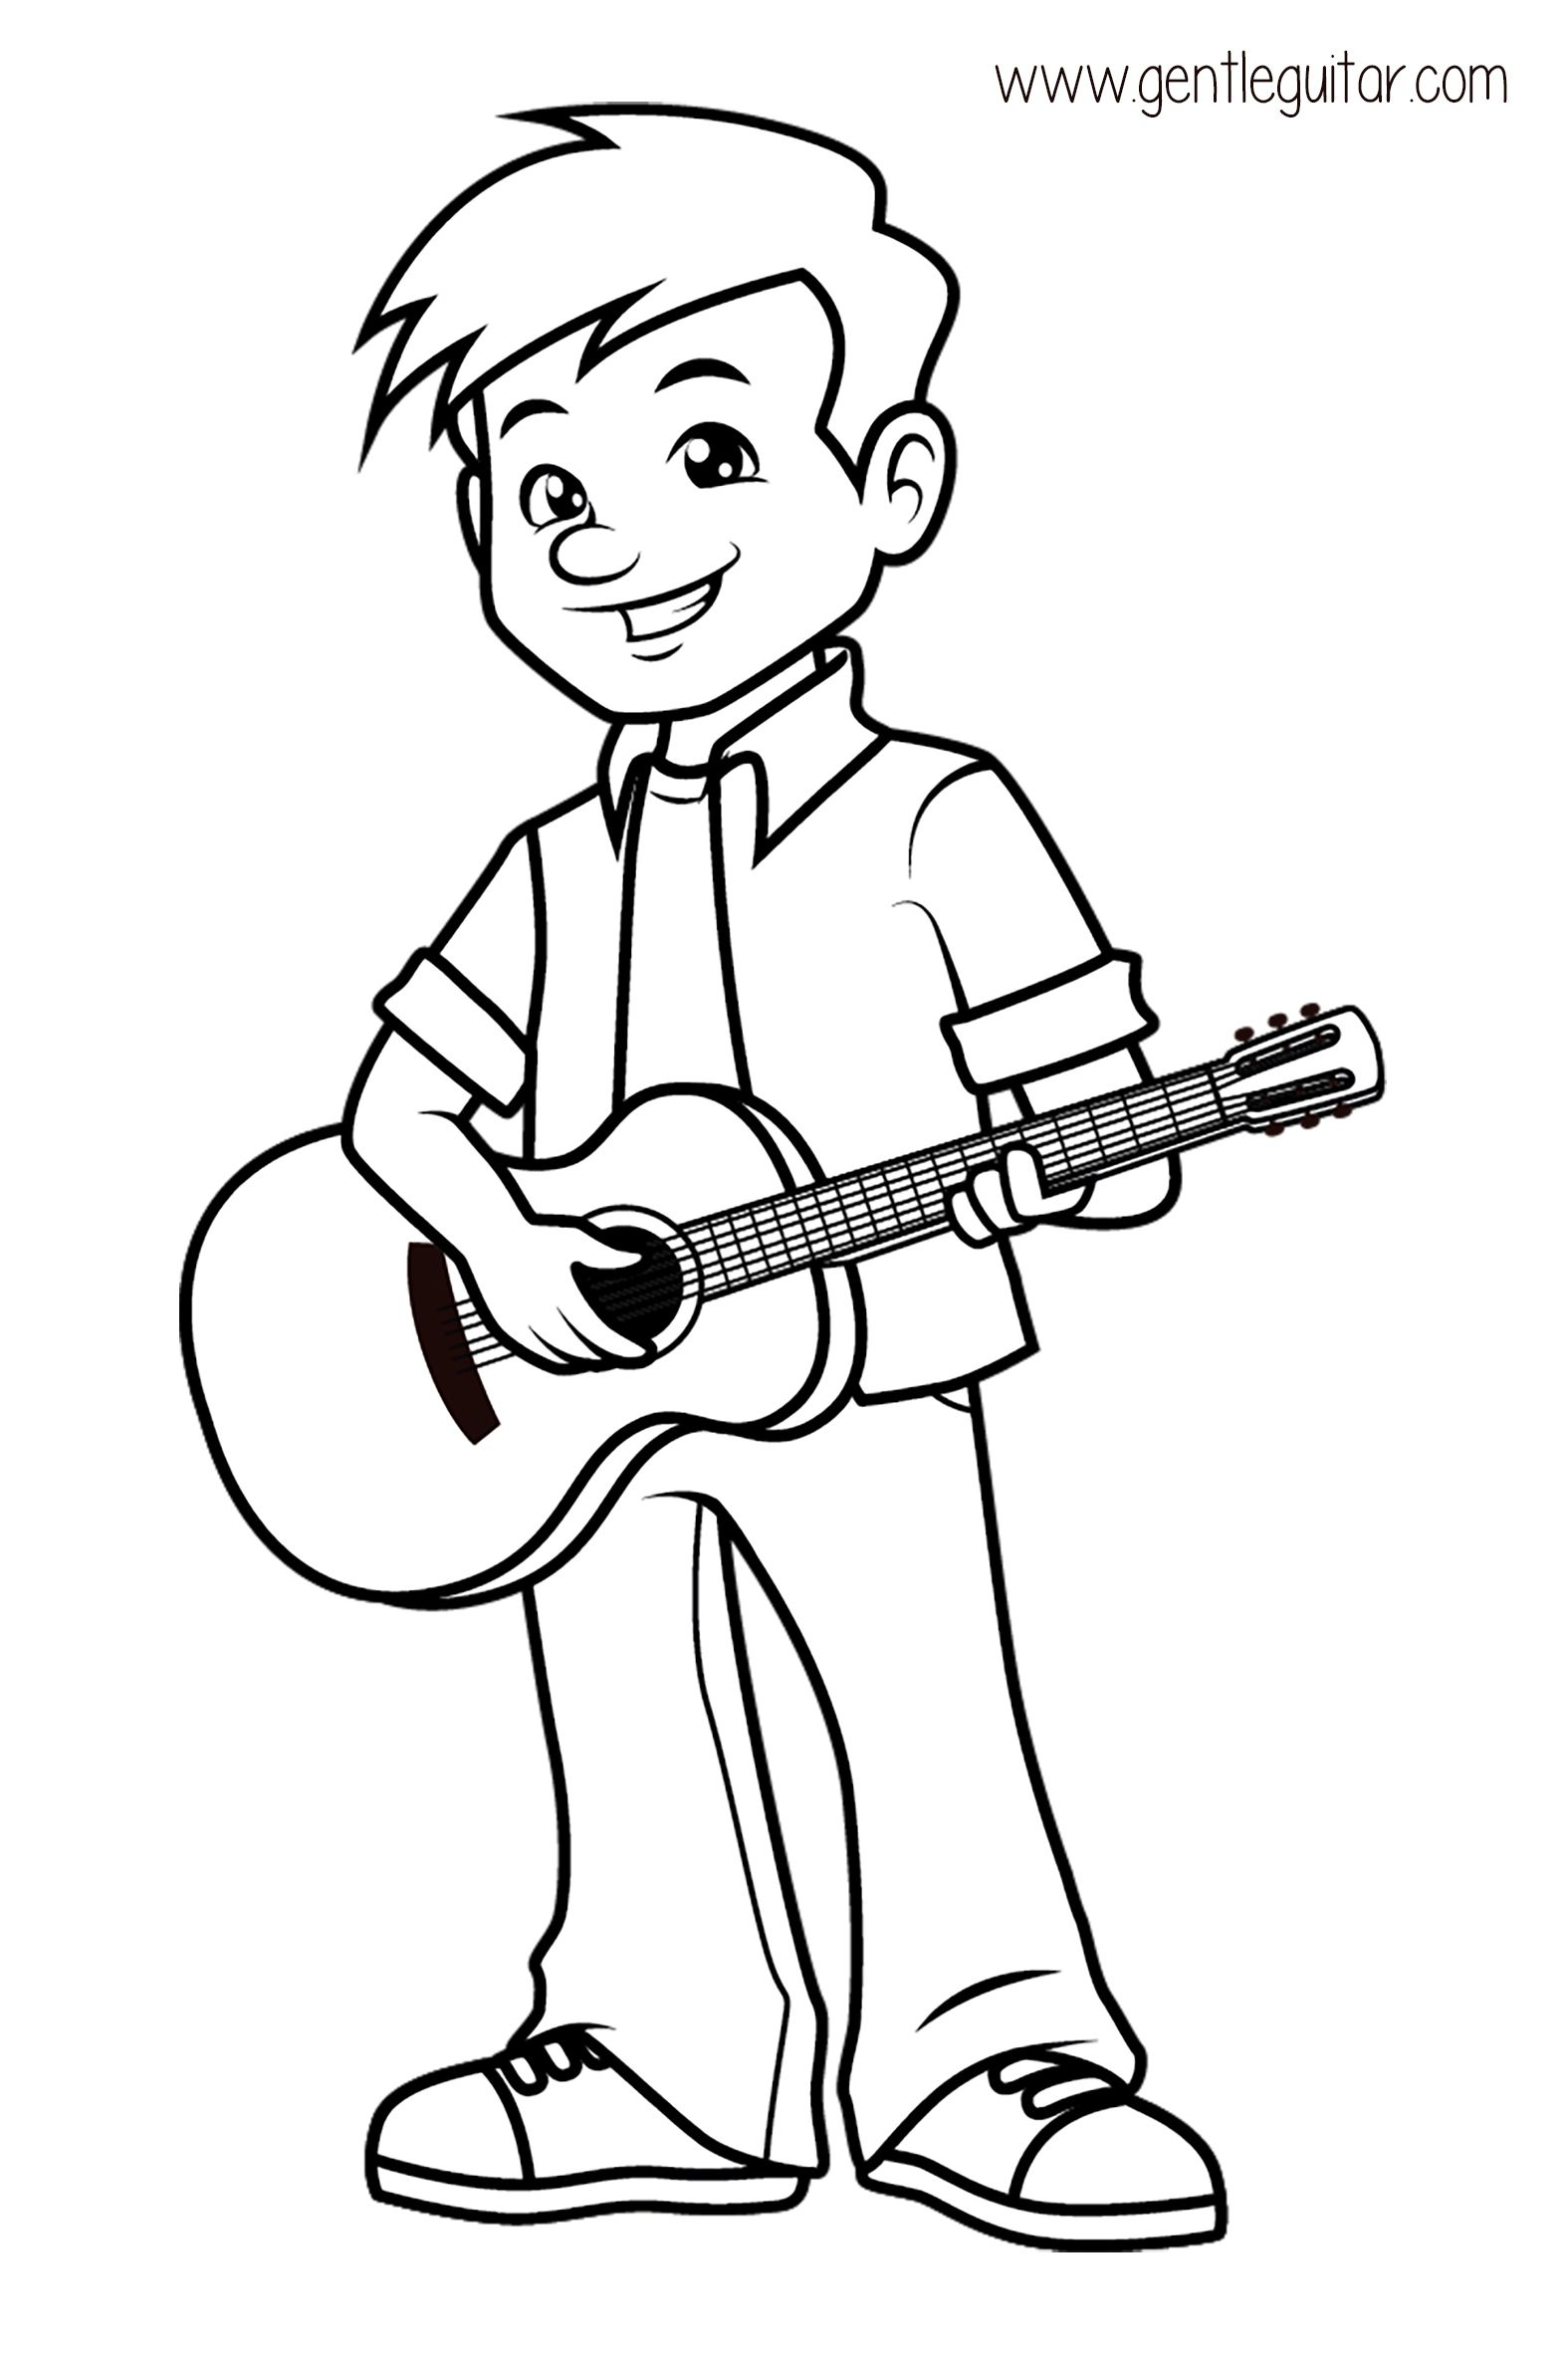 Coloring a boy playing guitar. Coloring prepares children for formal ...